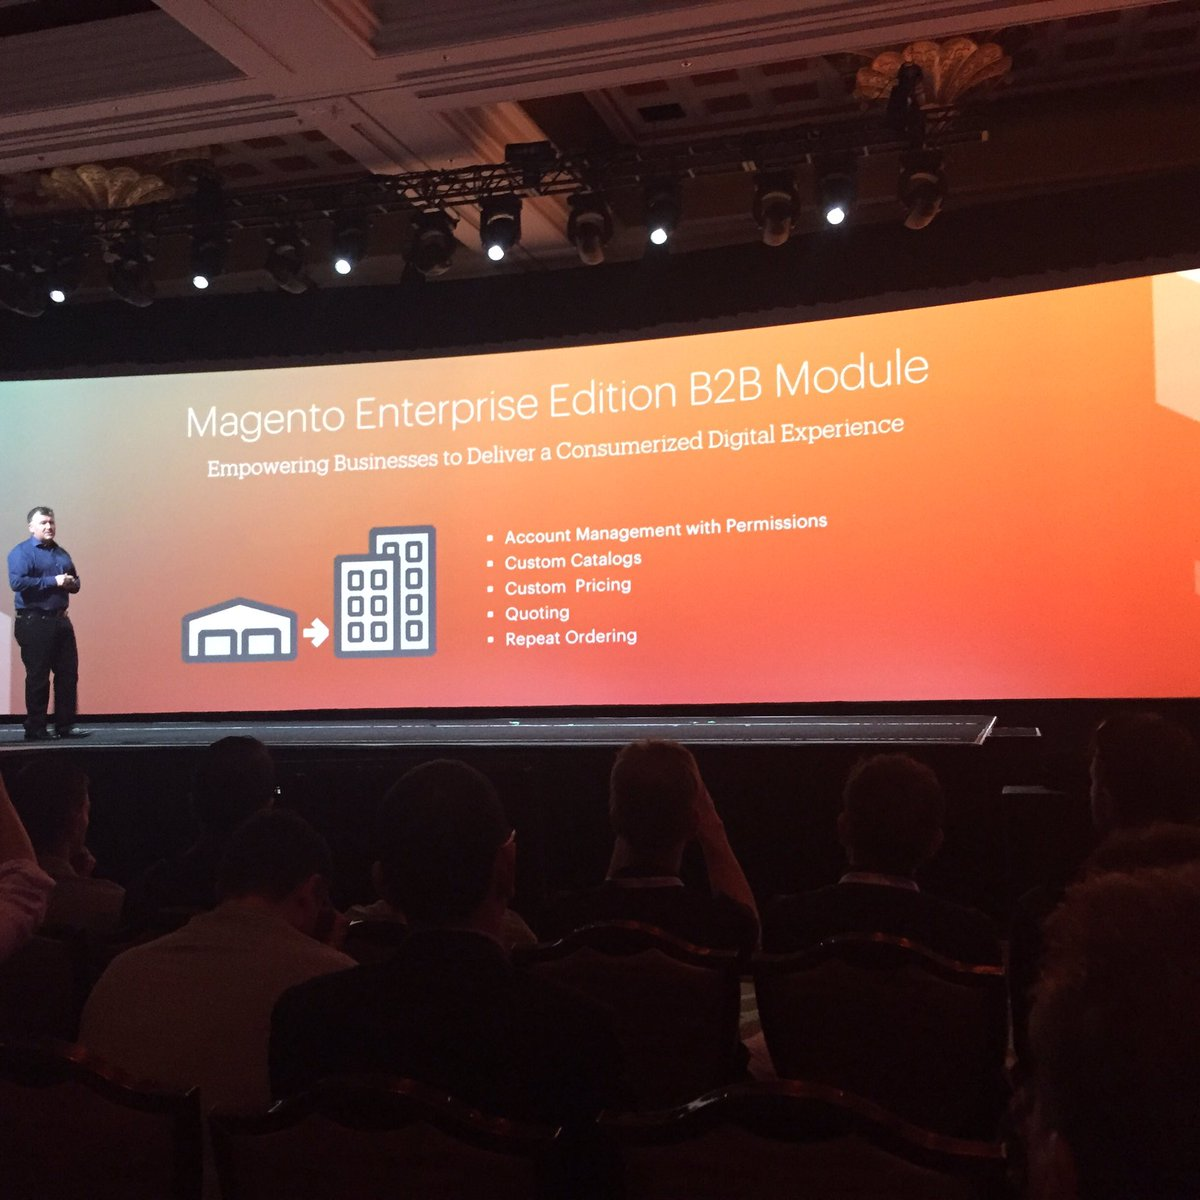 jaalcant: New Magento 2 B2B module available in Q3 #MagentoImagine https://t.co/6dTonvpW4n